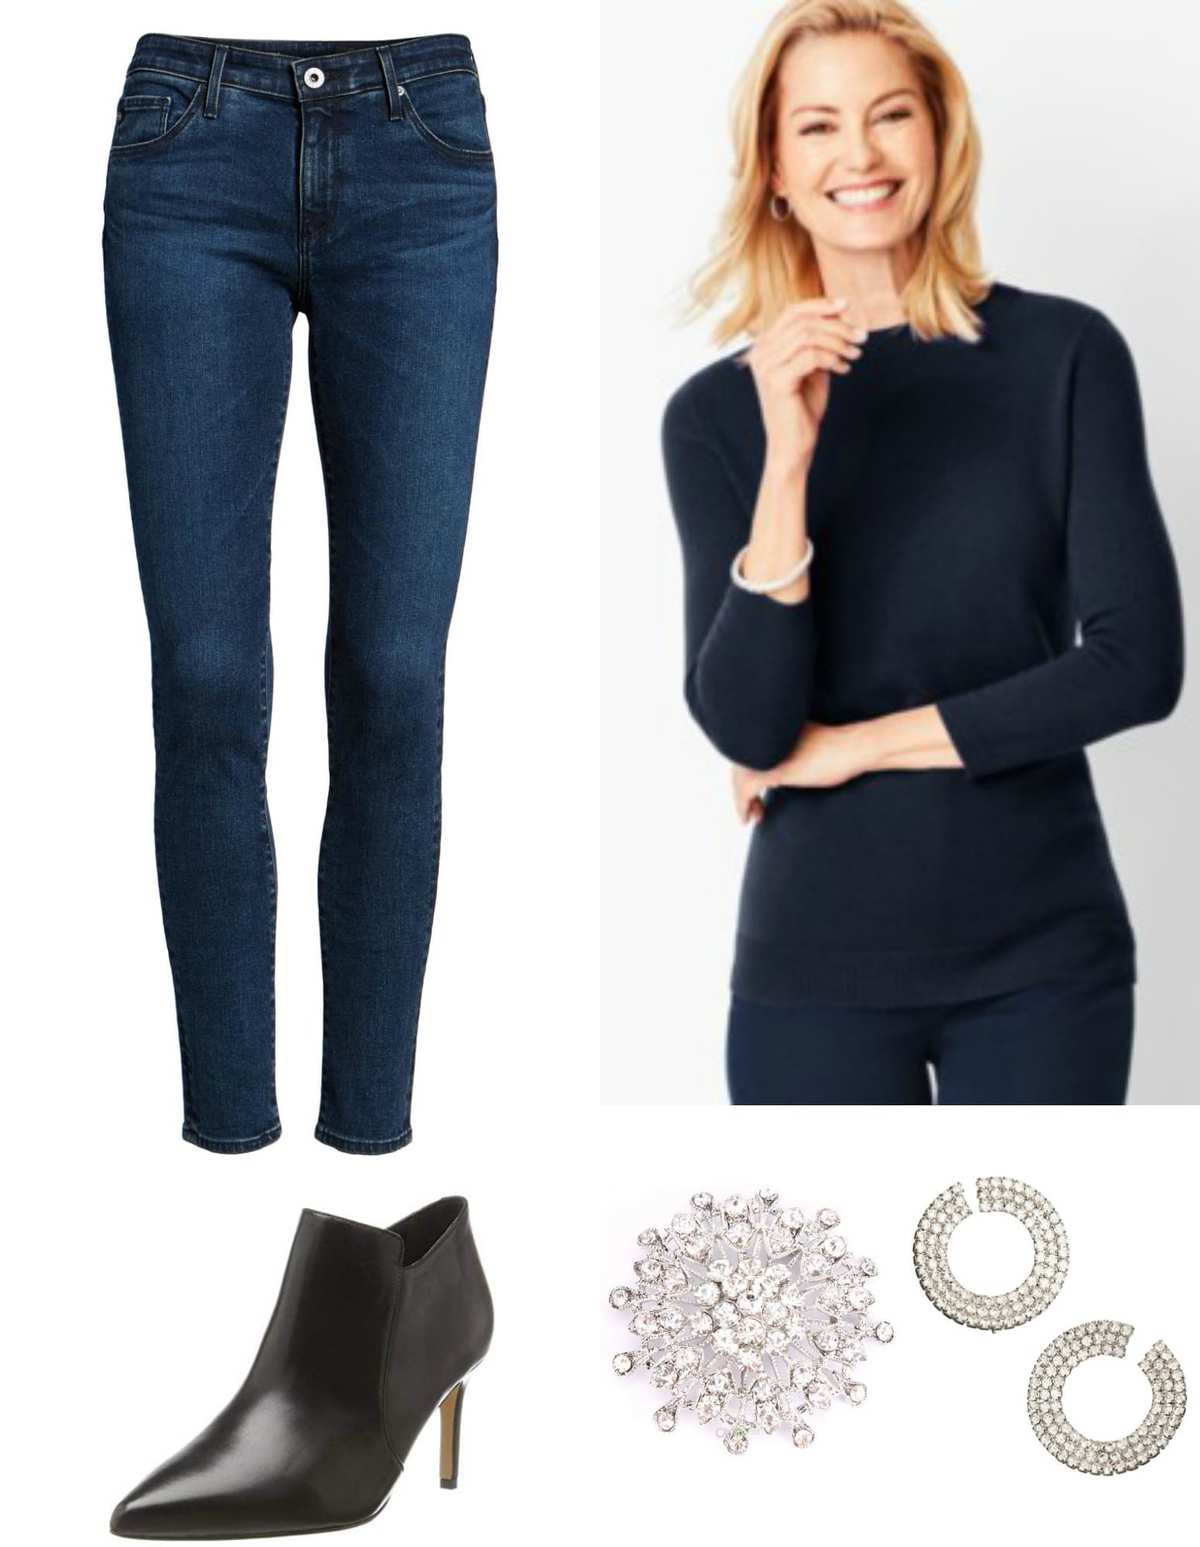 Navy cashmere sweater with navy ankle jeans and a sparkly brooch